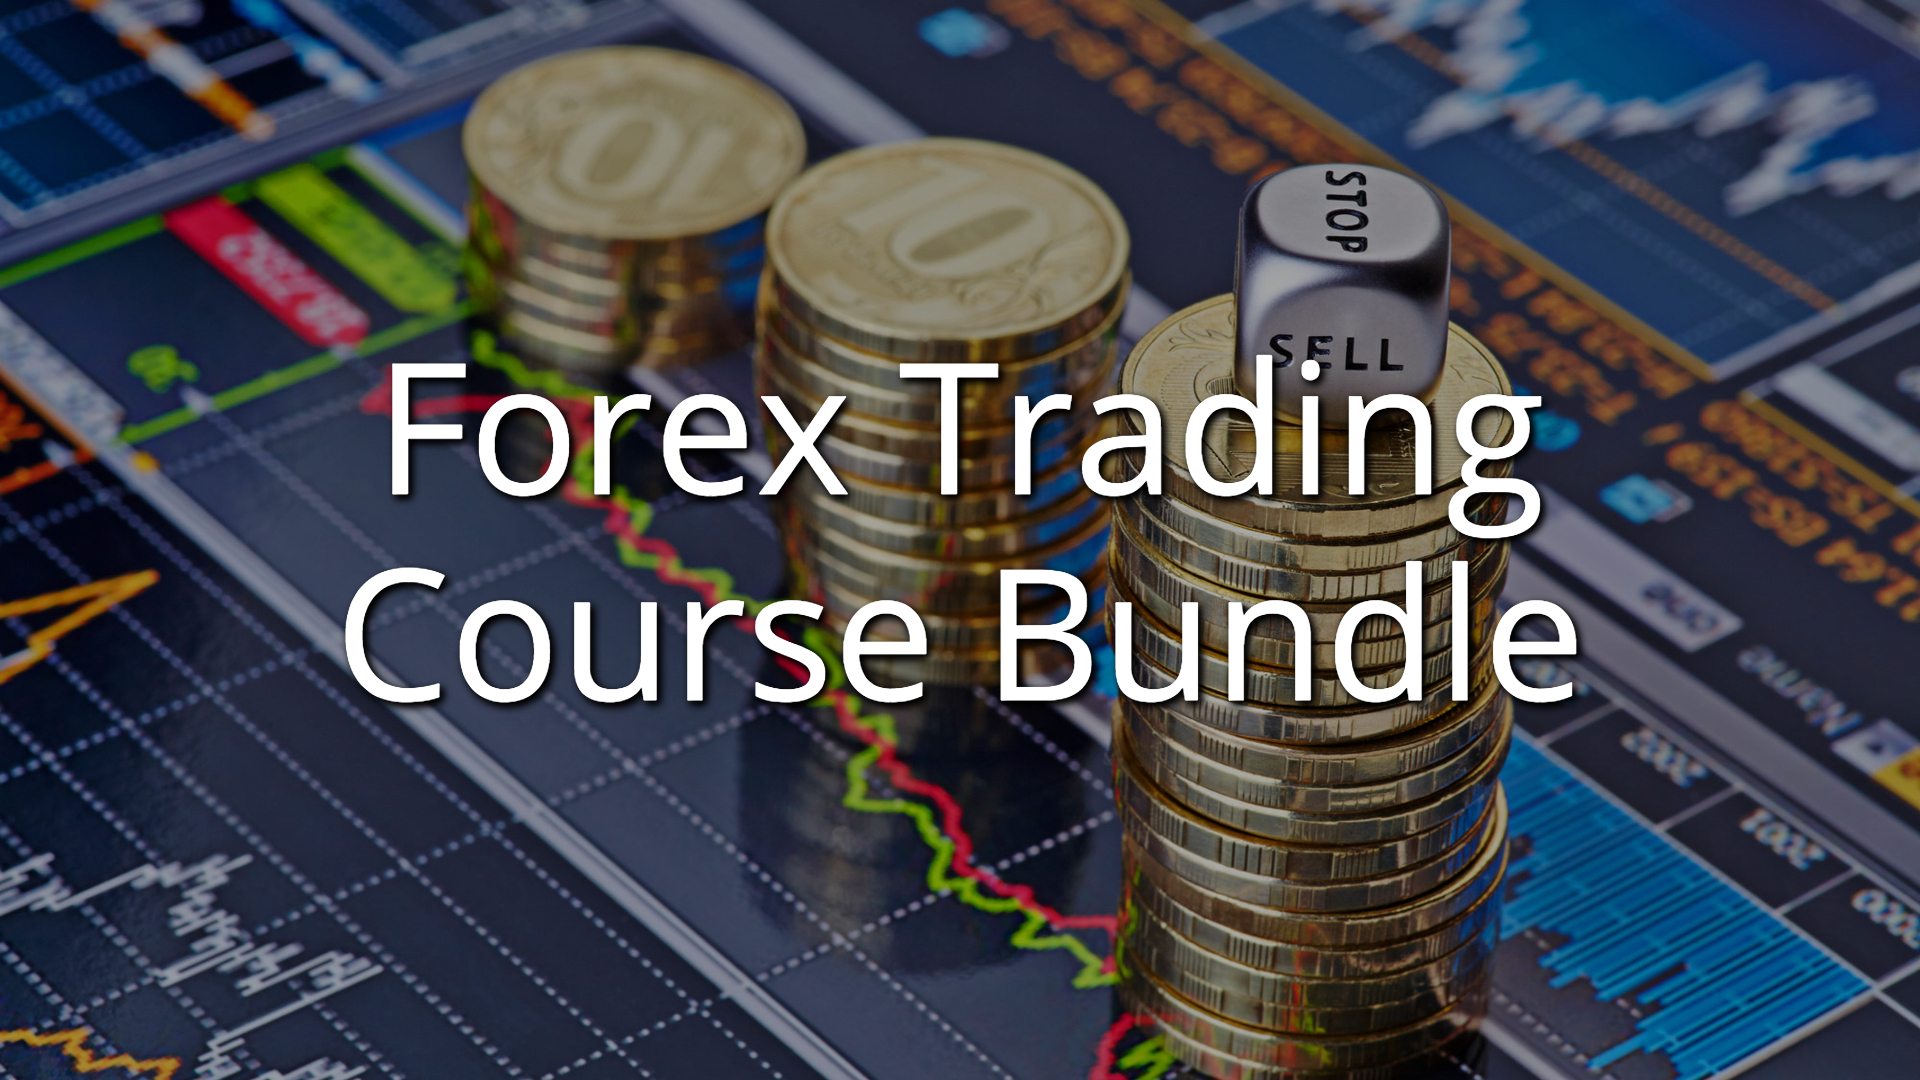 Forex Trading Course Bundle | Forex Trading Community